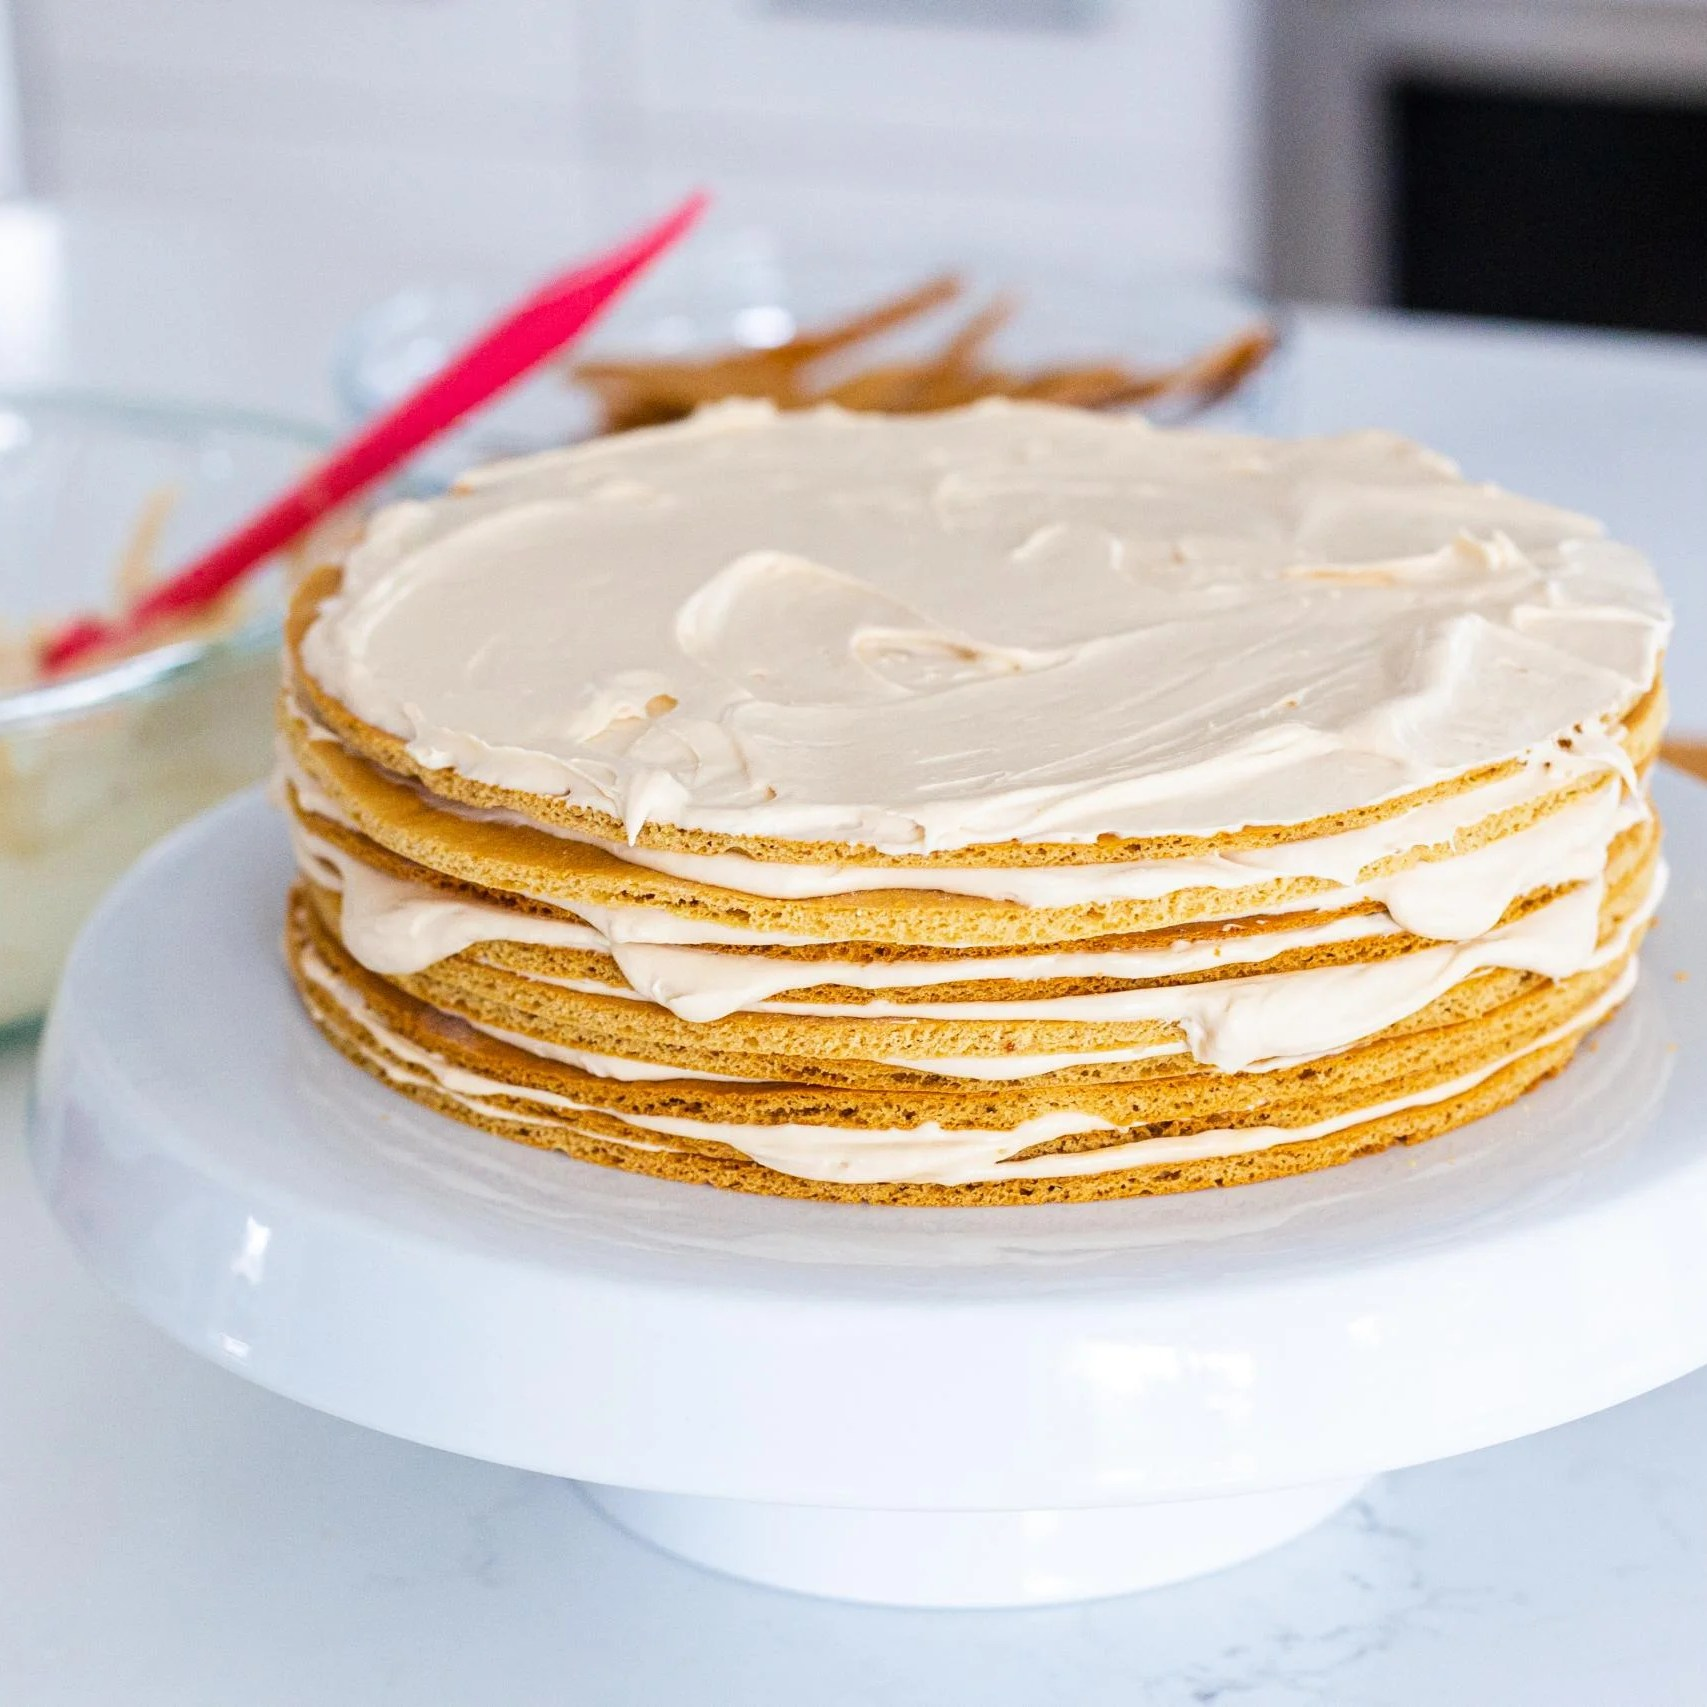 Honey cake layers with cream in between